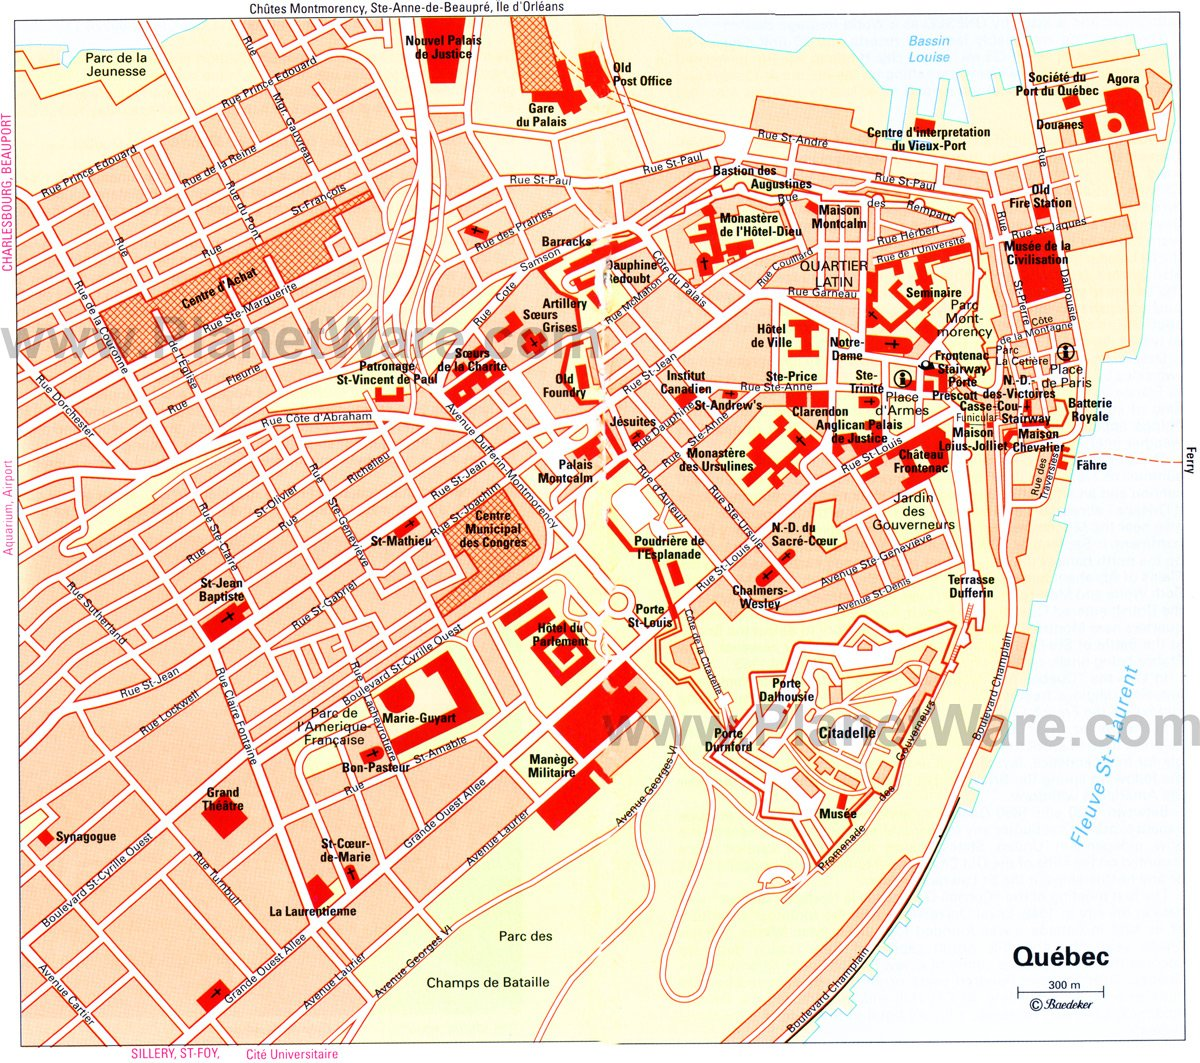 Quebec City Map - Tourist Attractions